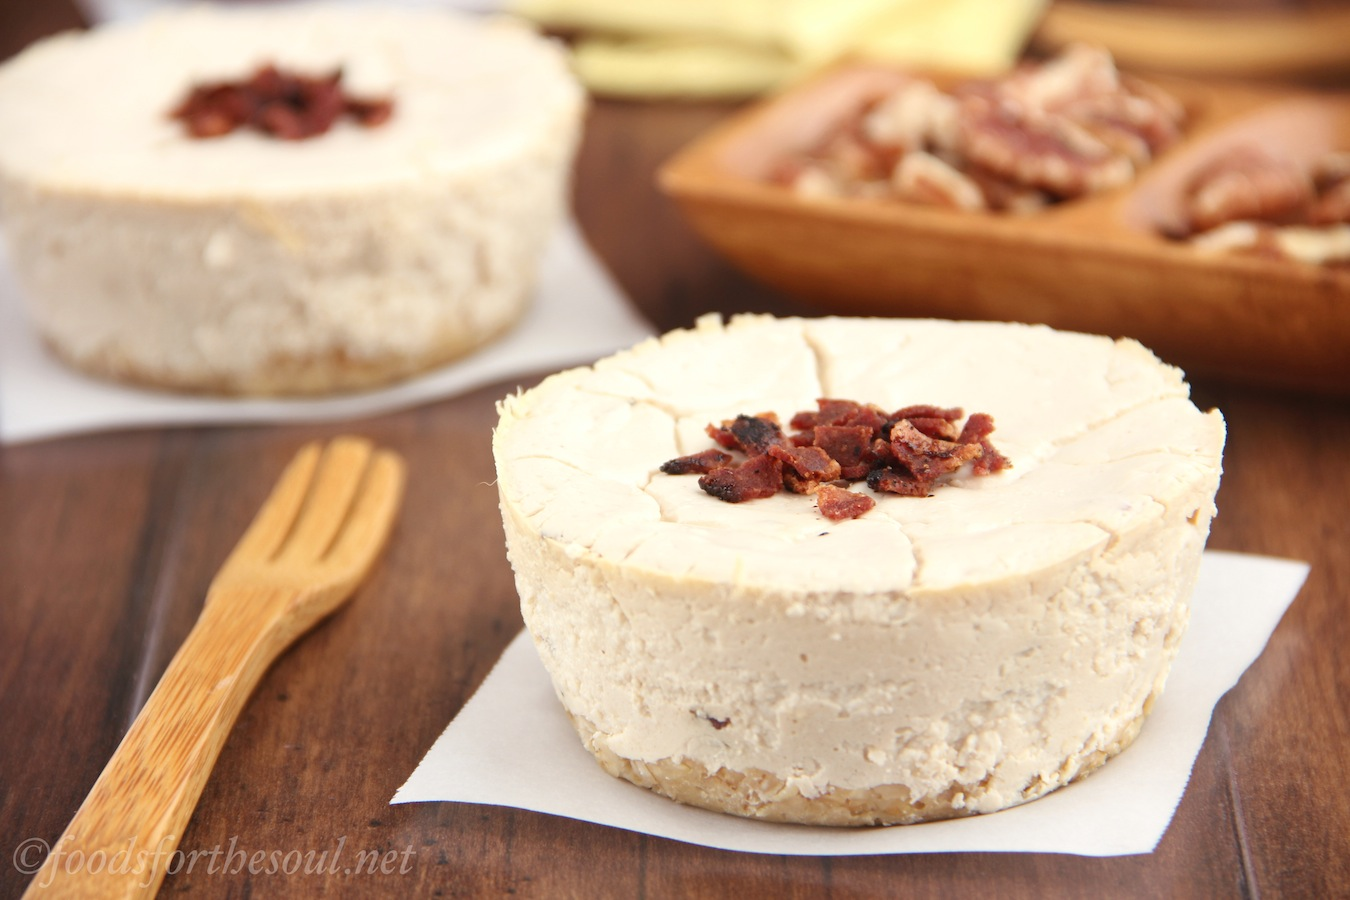 Maple Bacon Breakfast Cheesecakes. With over 16 grams of protein, they're MEANT to be eaten for breakfast!